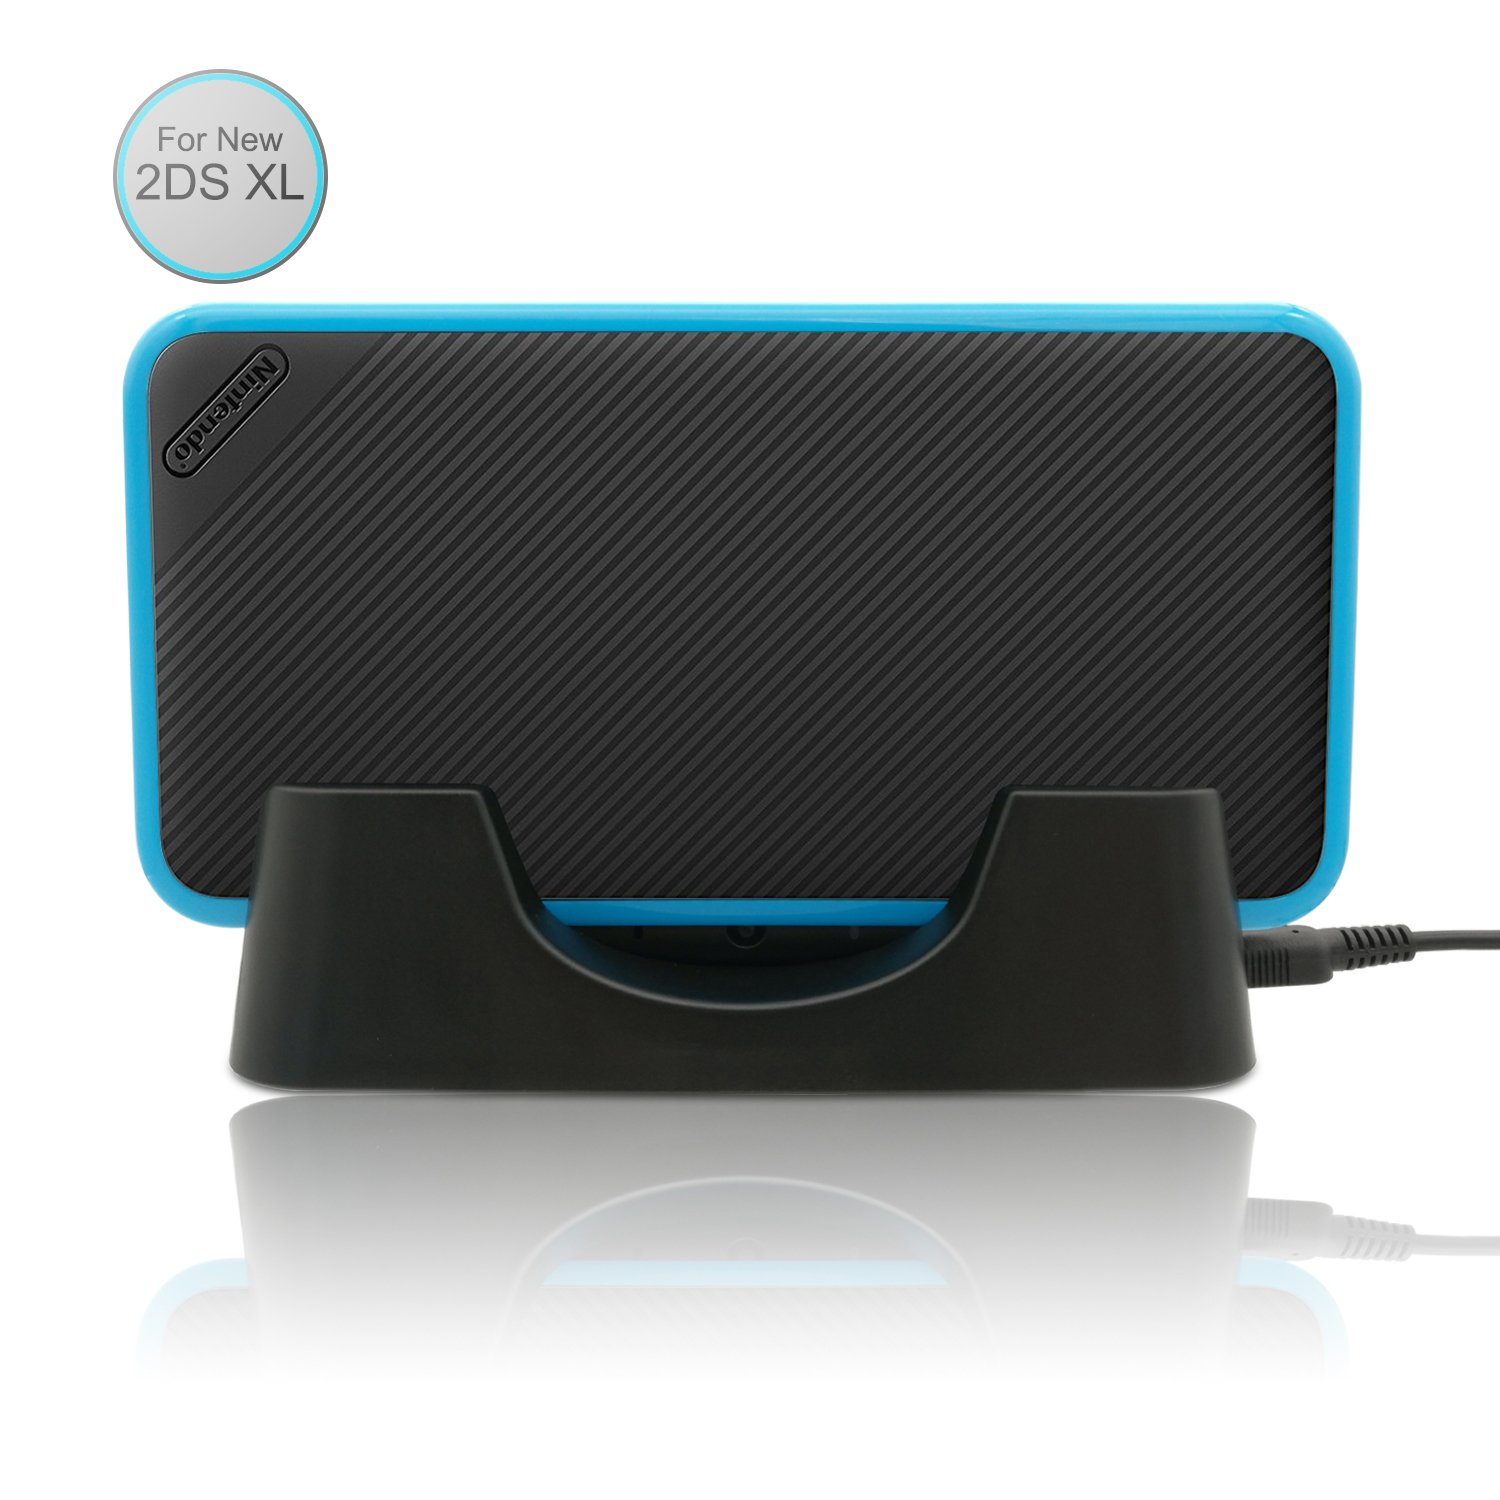 FastSnail Charging Dock For New Nintendo 2DS XL, Charging Station Cradle Stand for 2017 New Nintendo 2DS XL/LL With Mini USB Cable